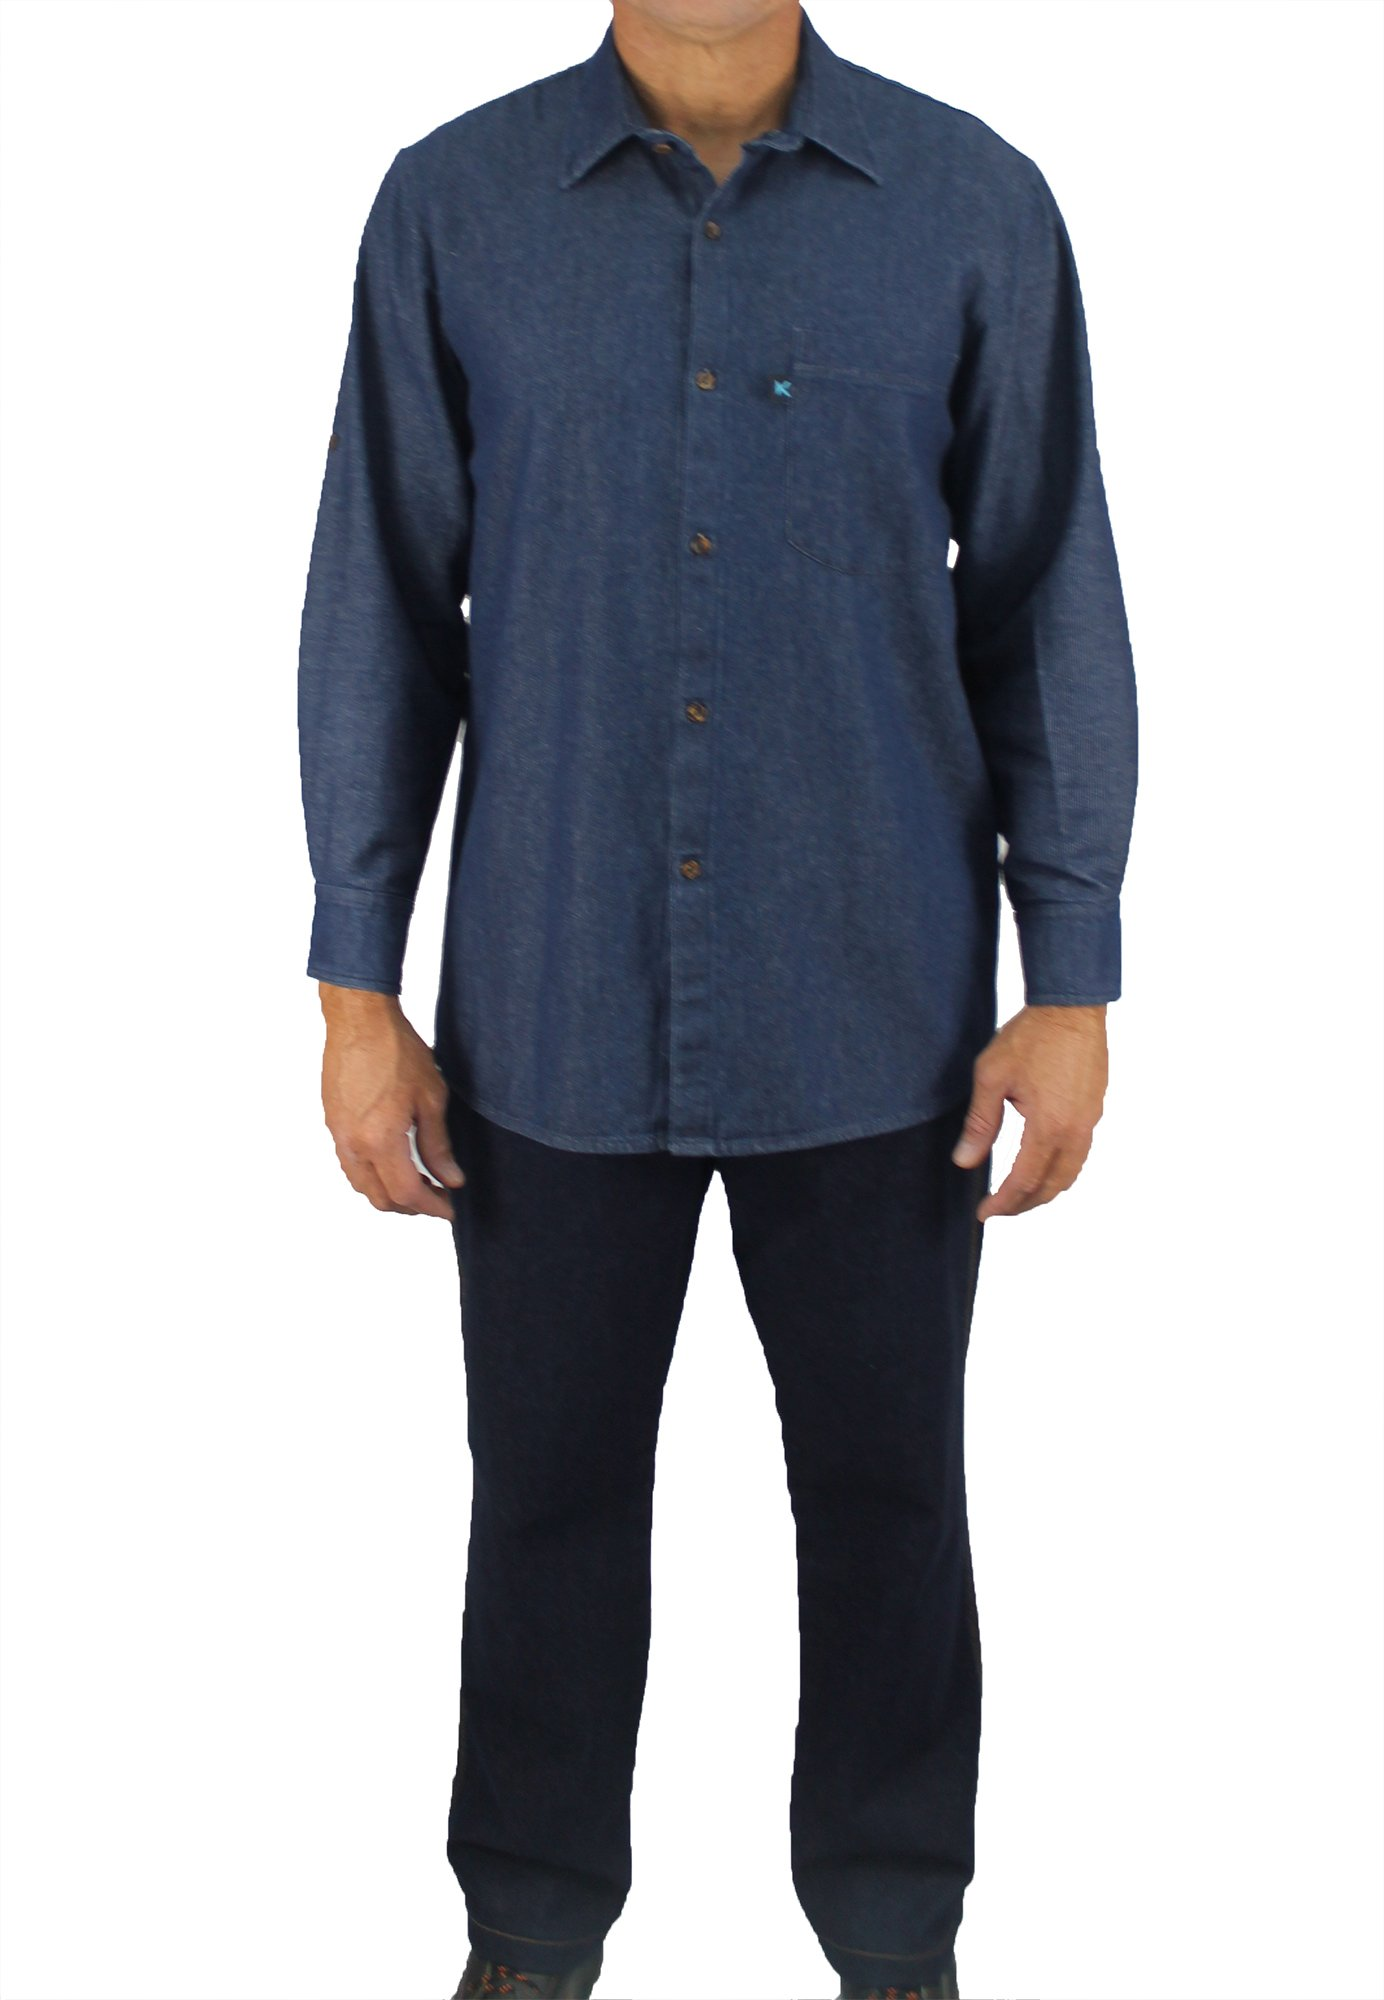 Kolossus Men's Lightweight 100% Cotton Long Sleeve Work Shirt with Pockets (Chambray, Small)